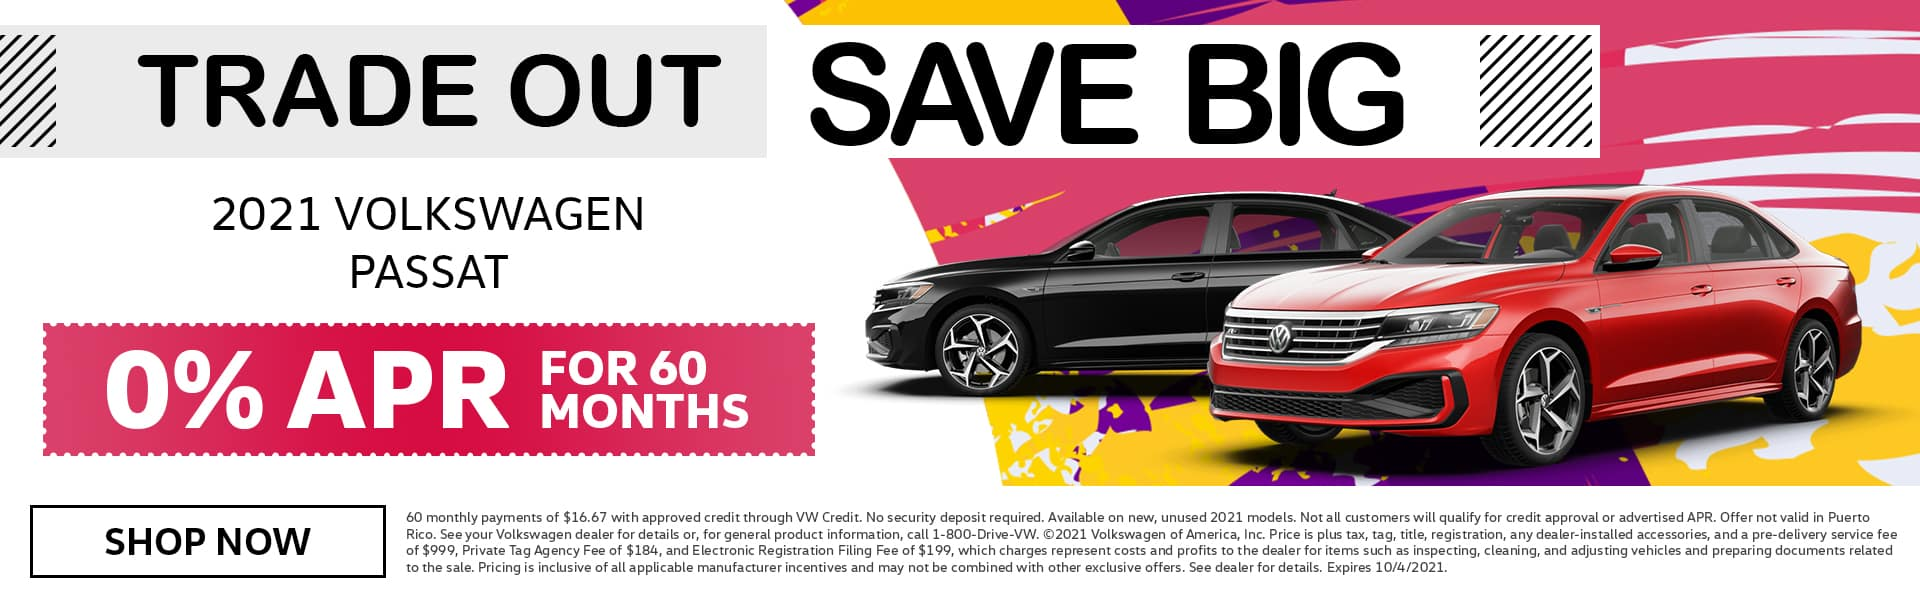 Trade Out Save Big | 2021 Volkswagen Passat | 0% APR For 60 Months